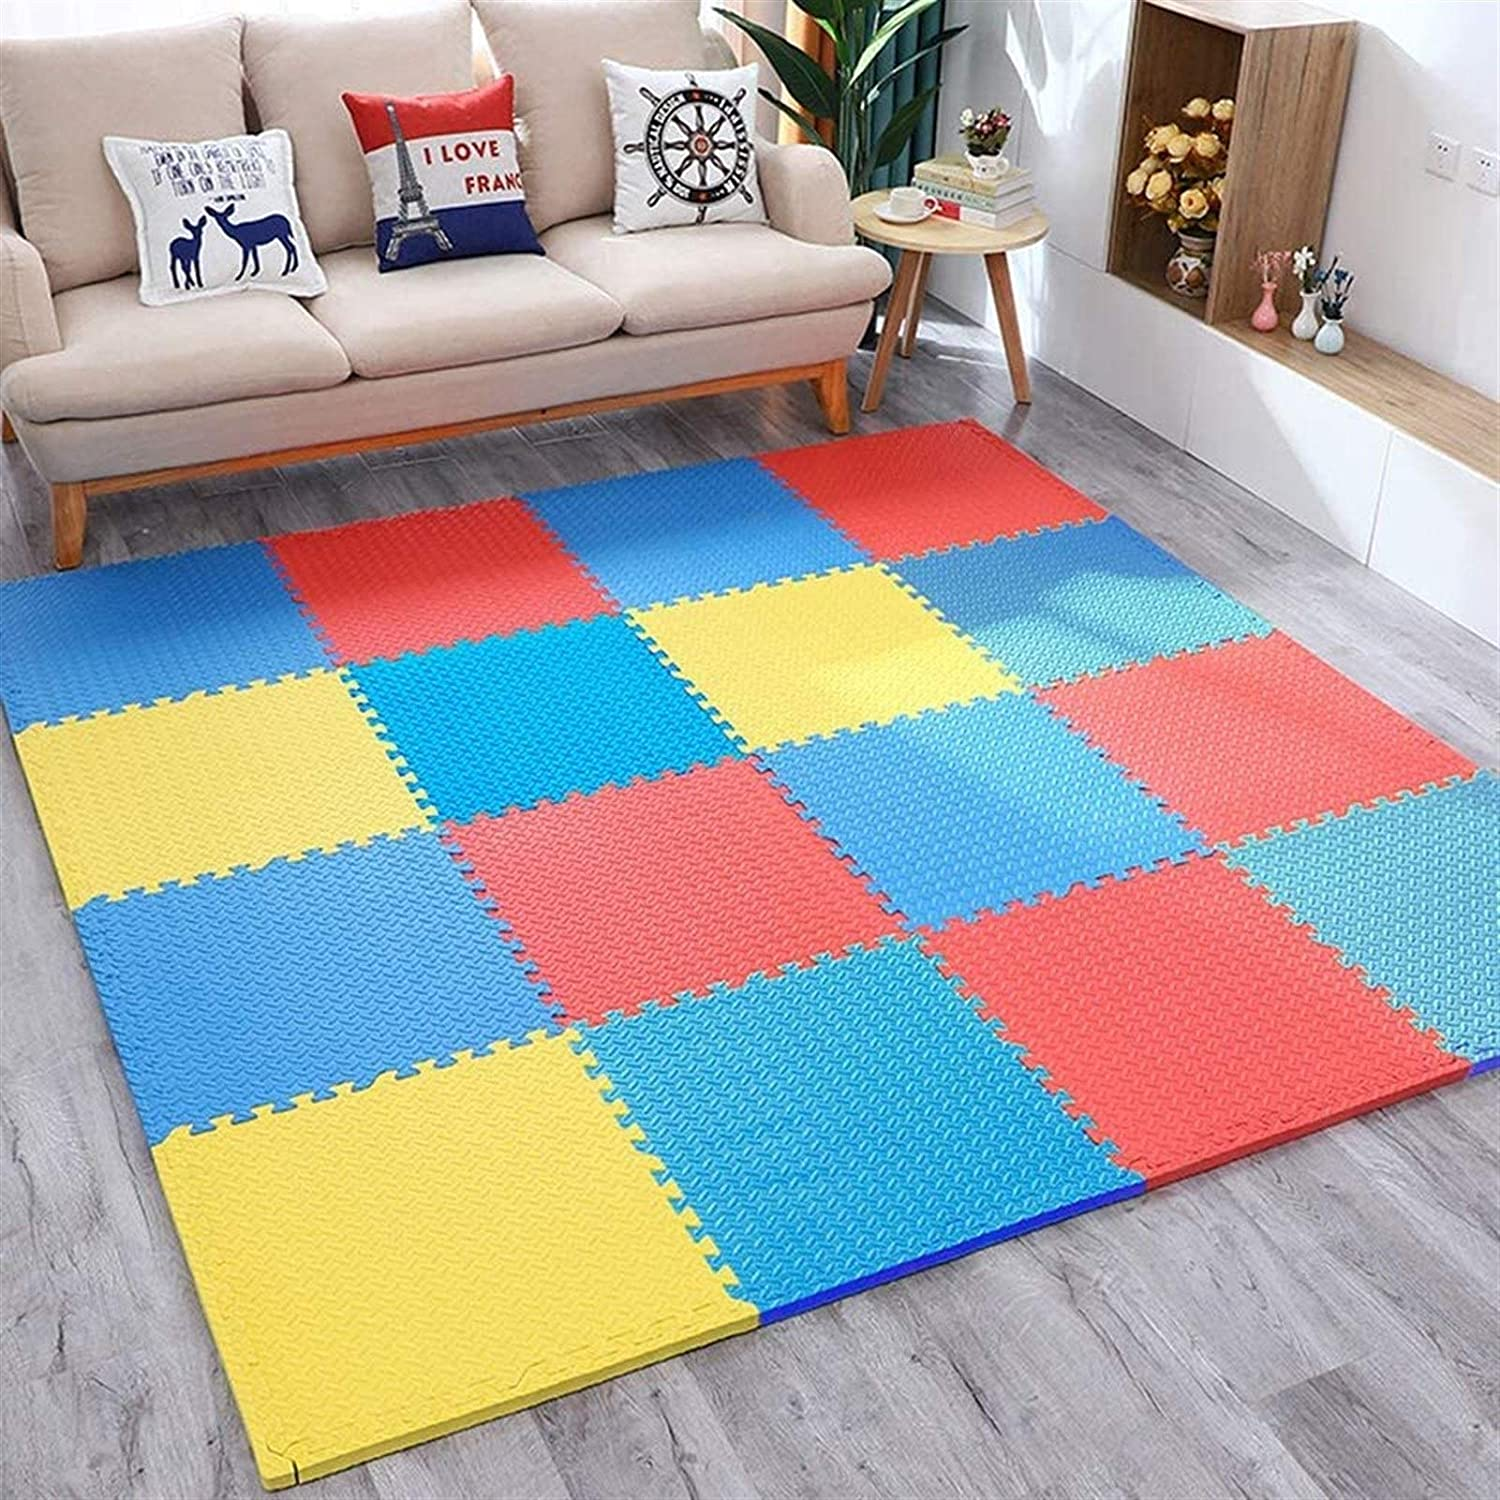 Puzzle Play Elegant Ranking TOP18 Mats Versatile Foam Tough And Durable Offering